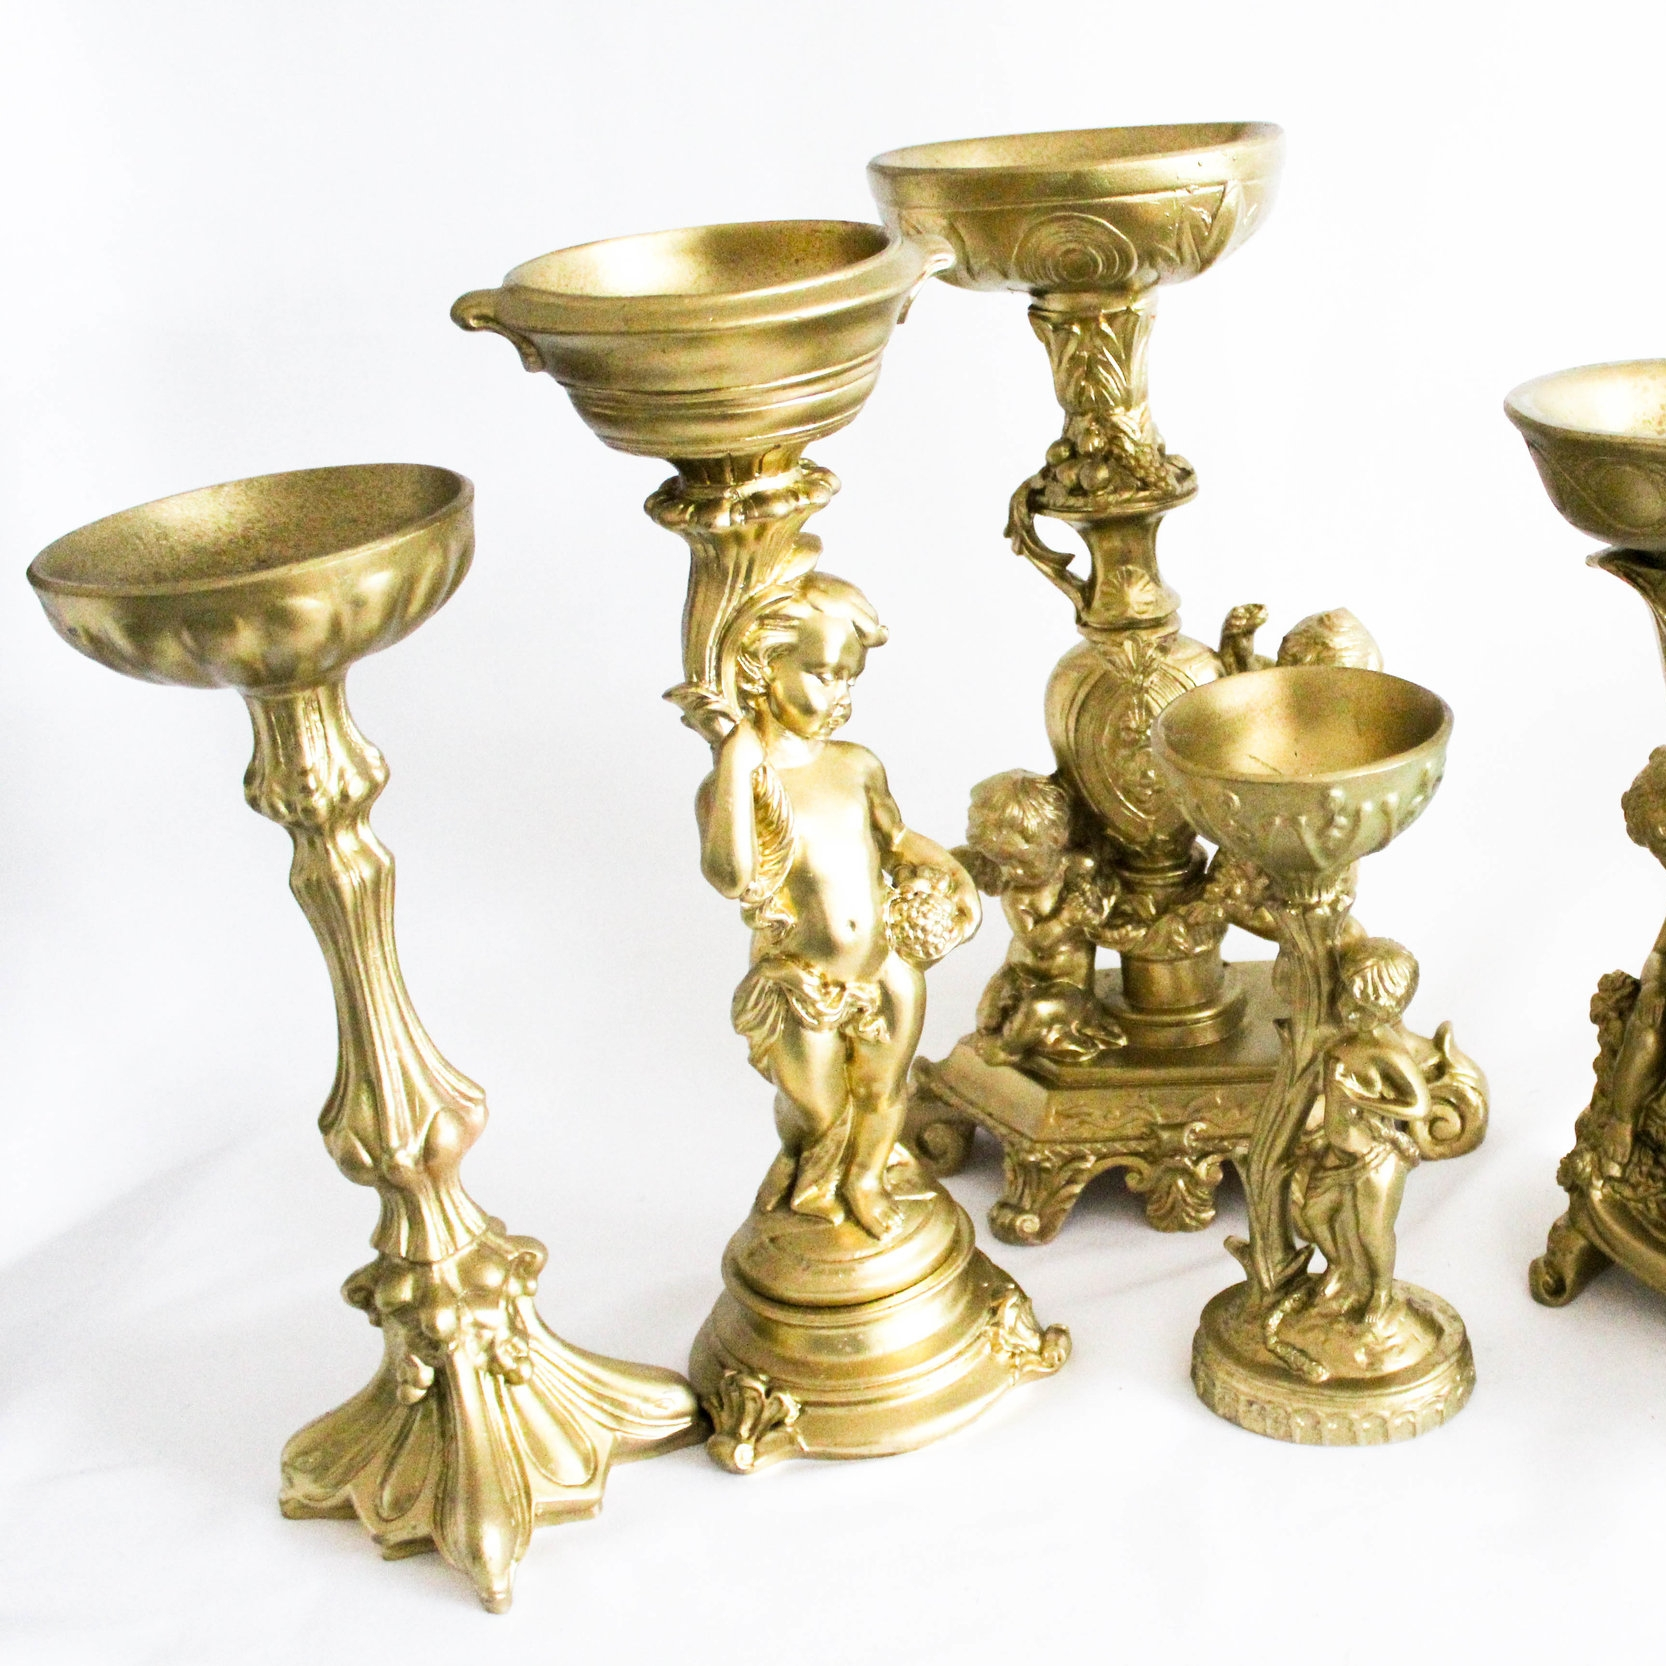 Ornate Gold Candlesticks - Add a bit of interest with these unique pieces. Great to add that historic look to your venue.